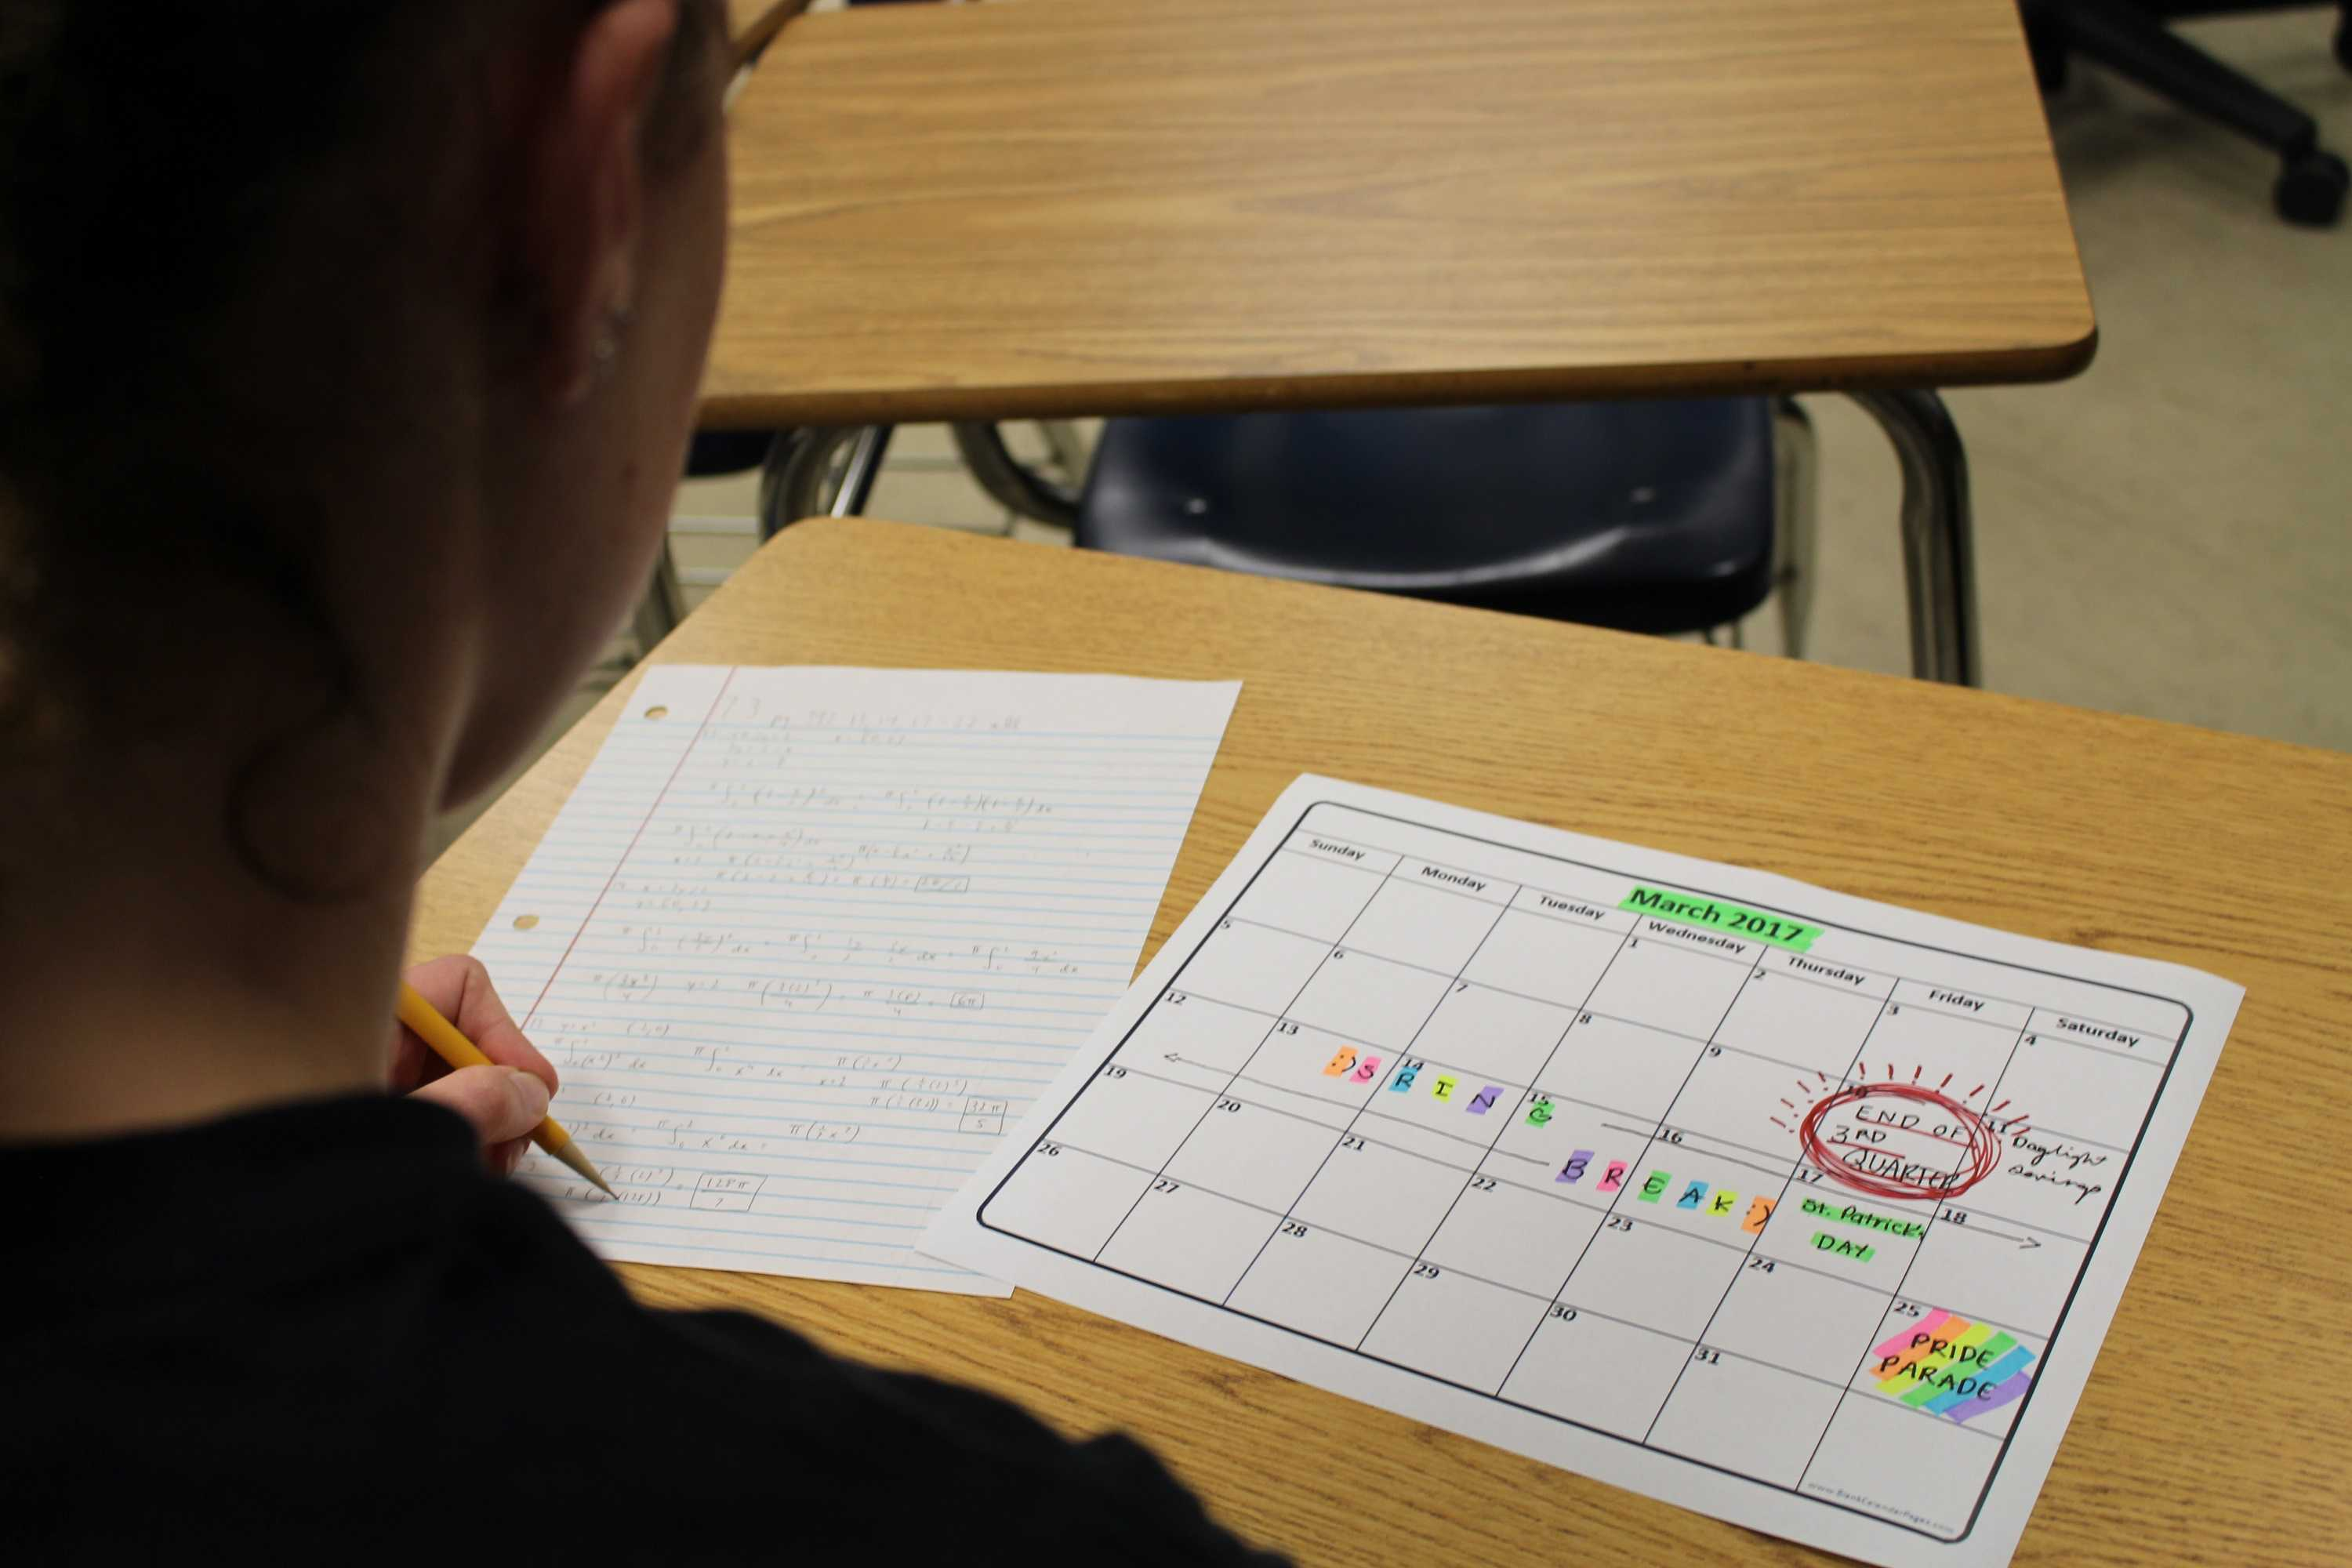 Deadlines loom for students as the third nine weeks ends on March 9.